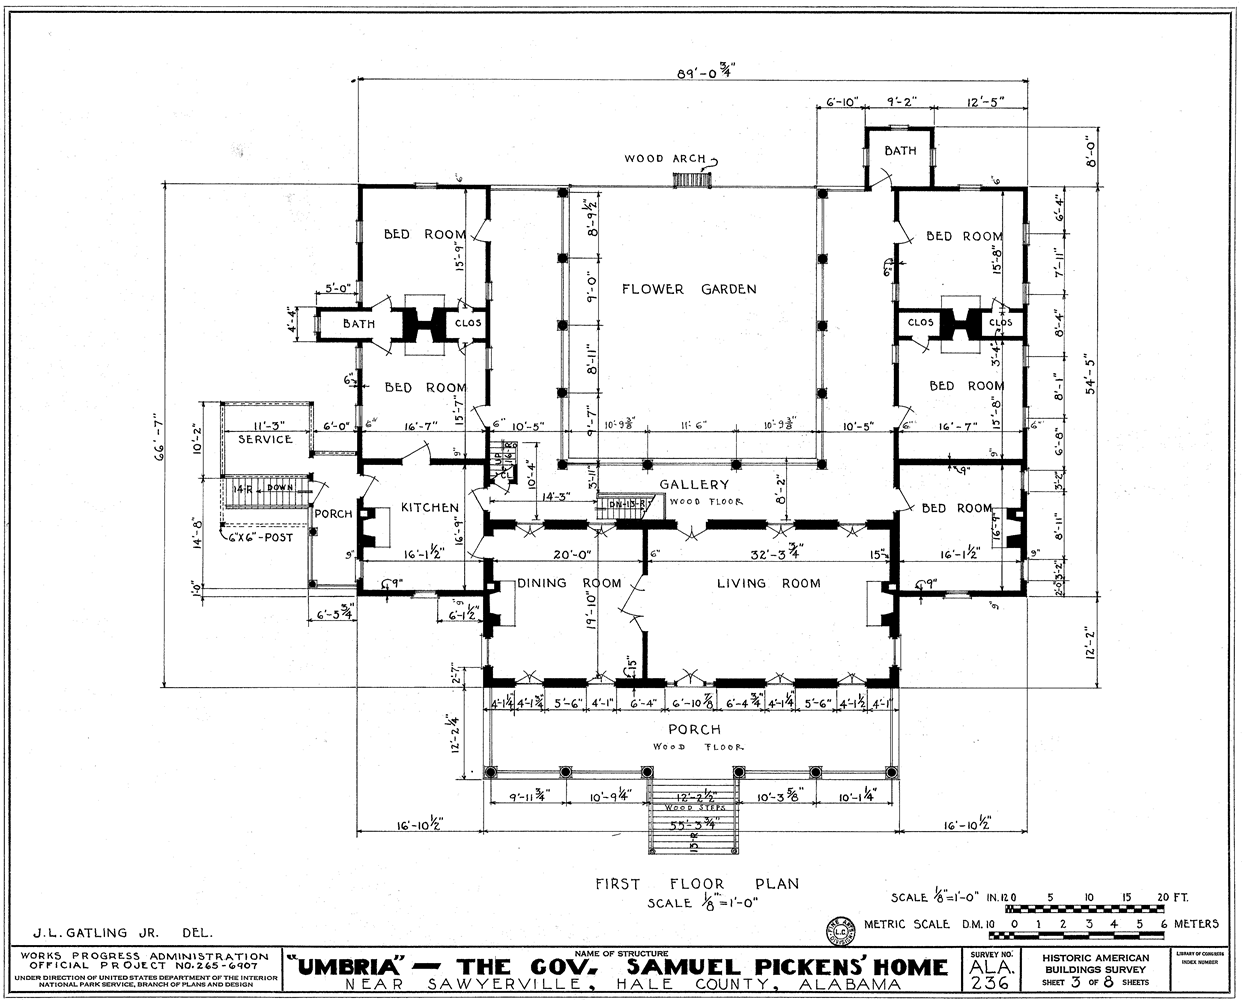 File umbria plantation architectural plan of main floor - Architectural plan of two bedroom flat with dining room ...